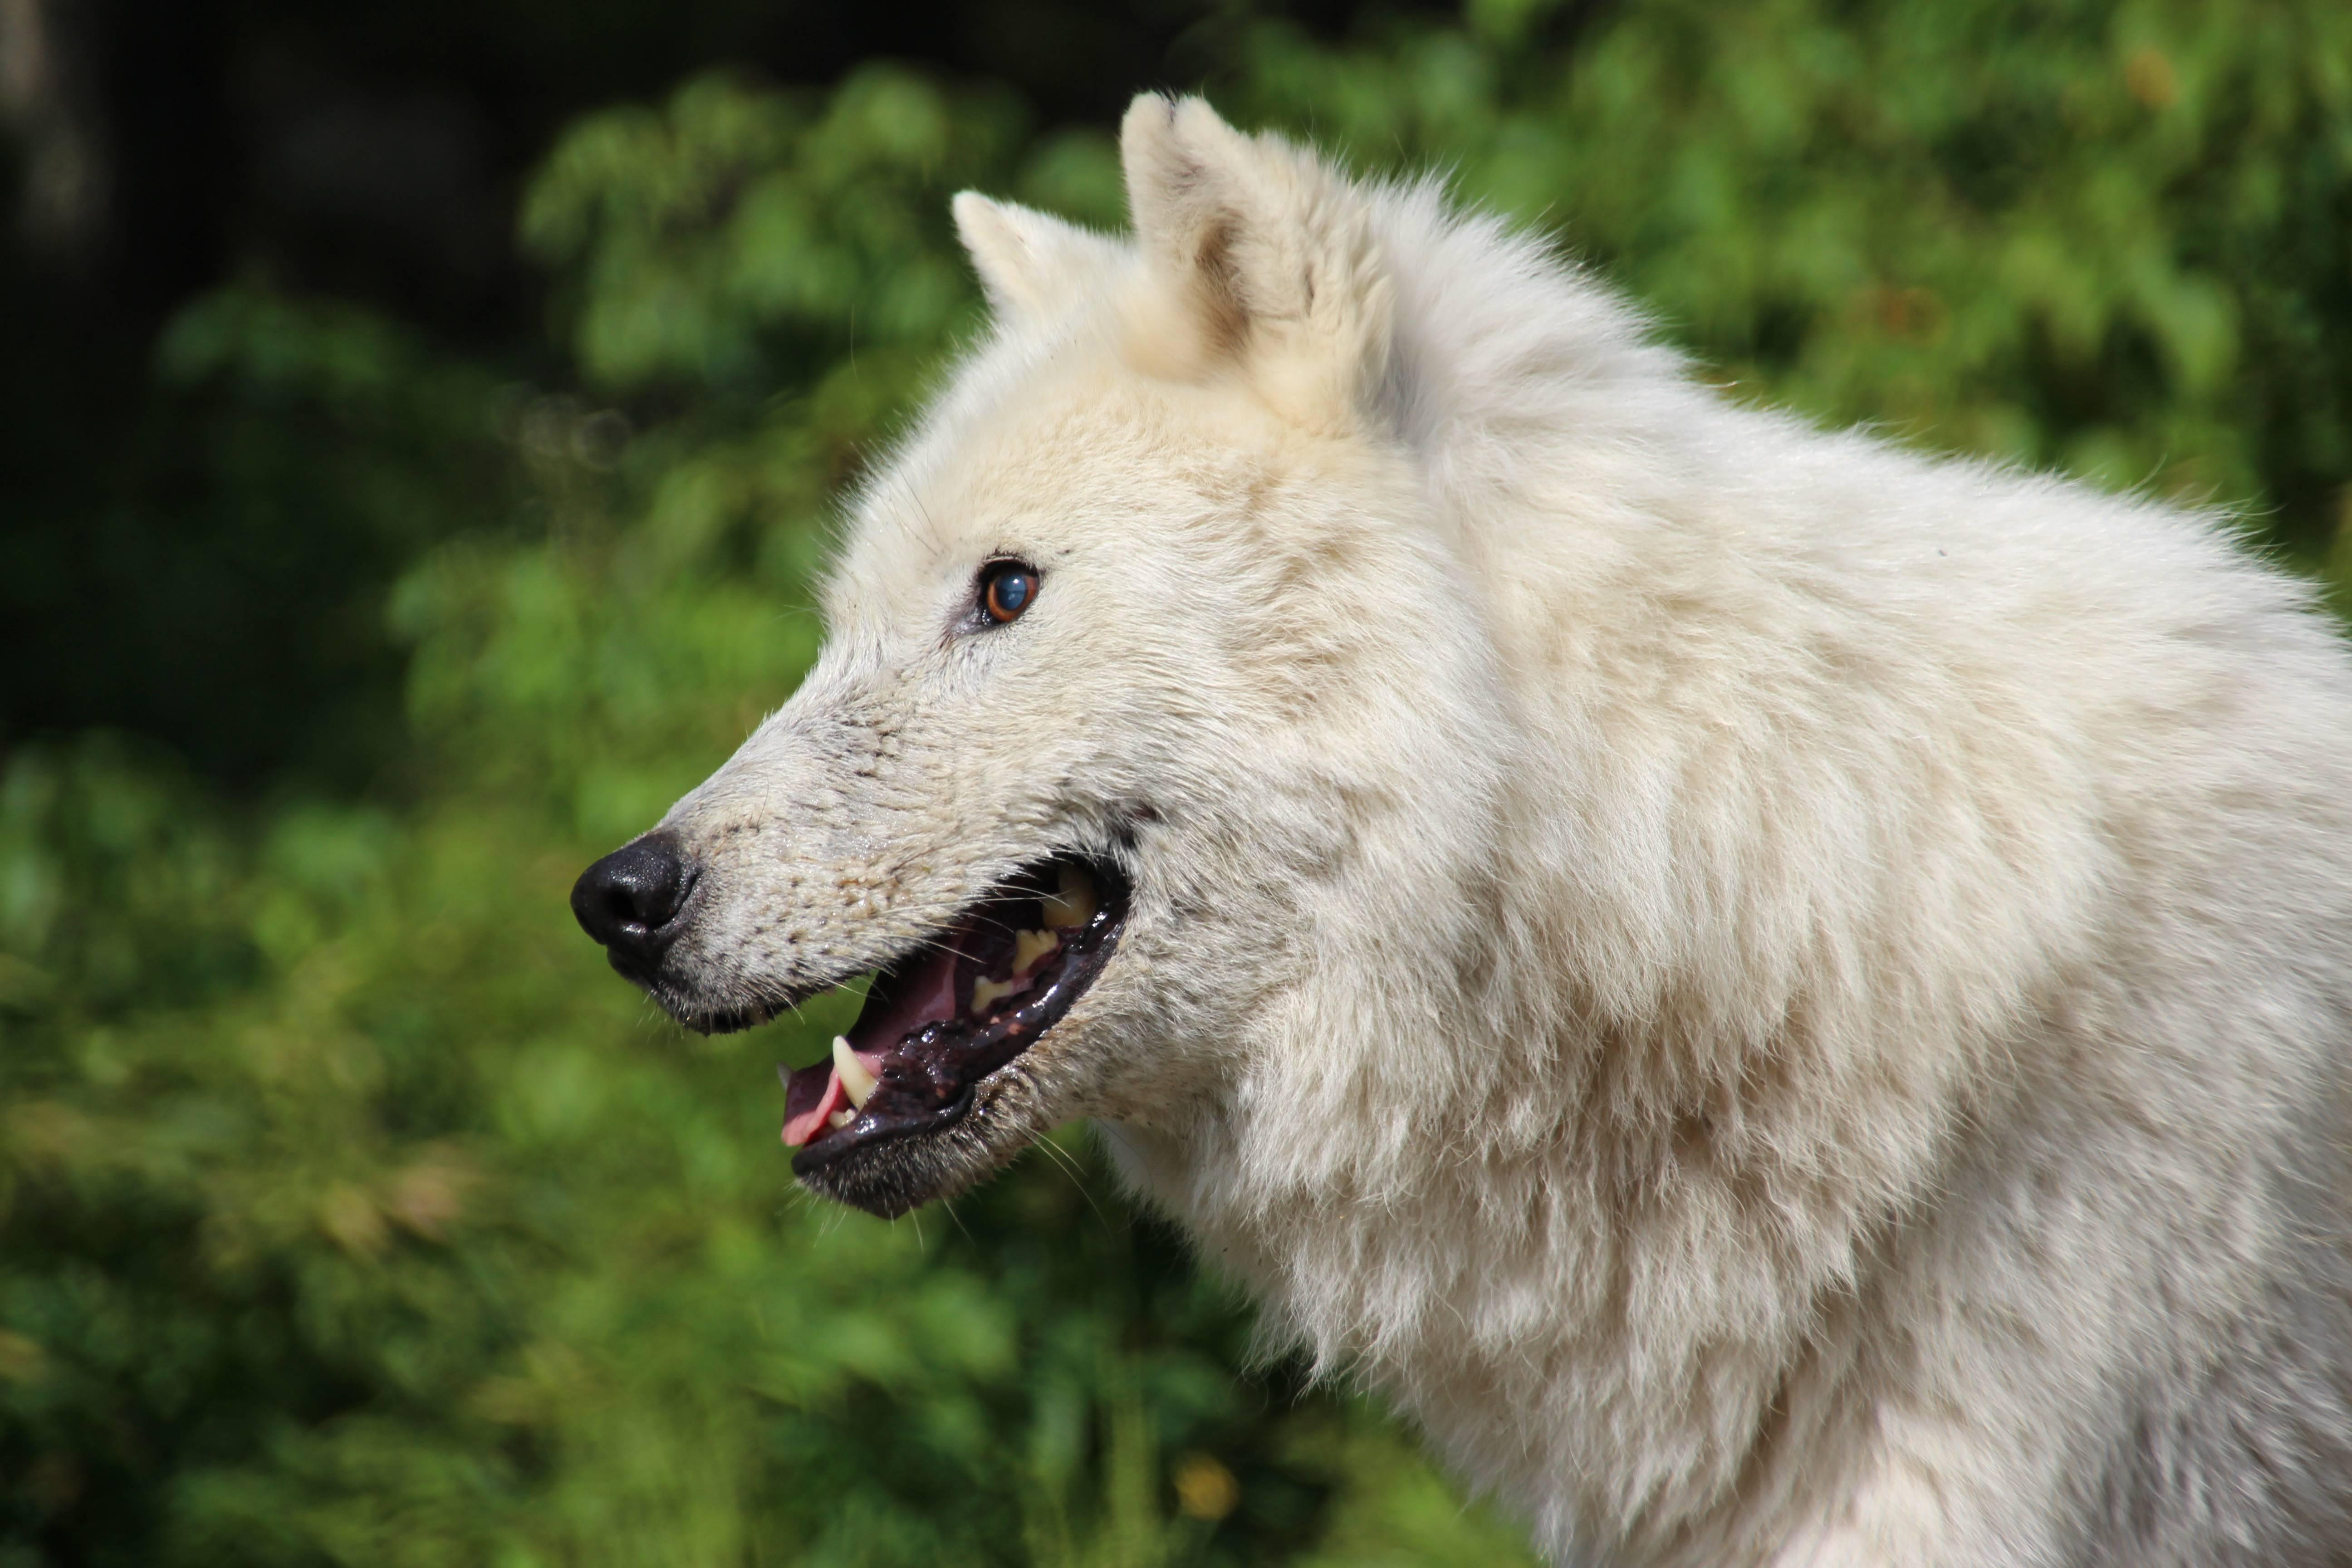 Actic wolf at Parc Omega, Montebello